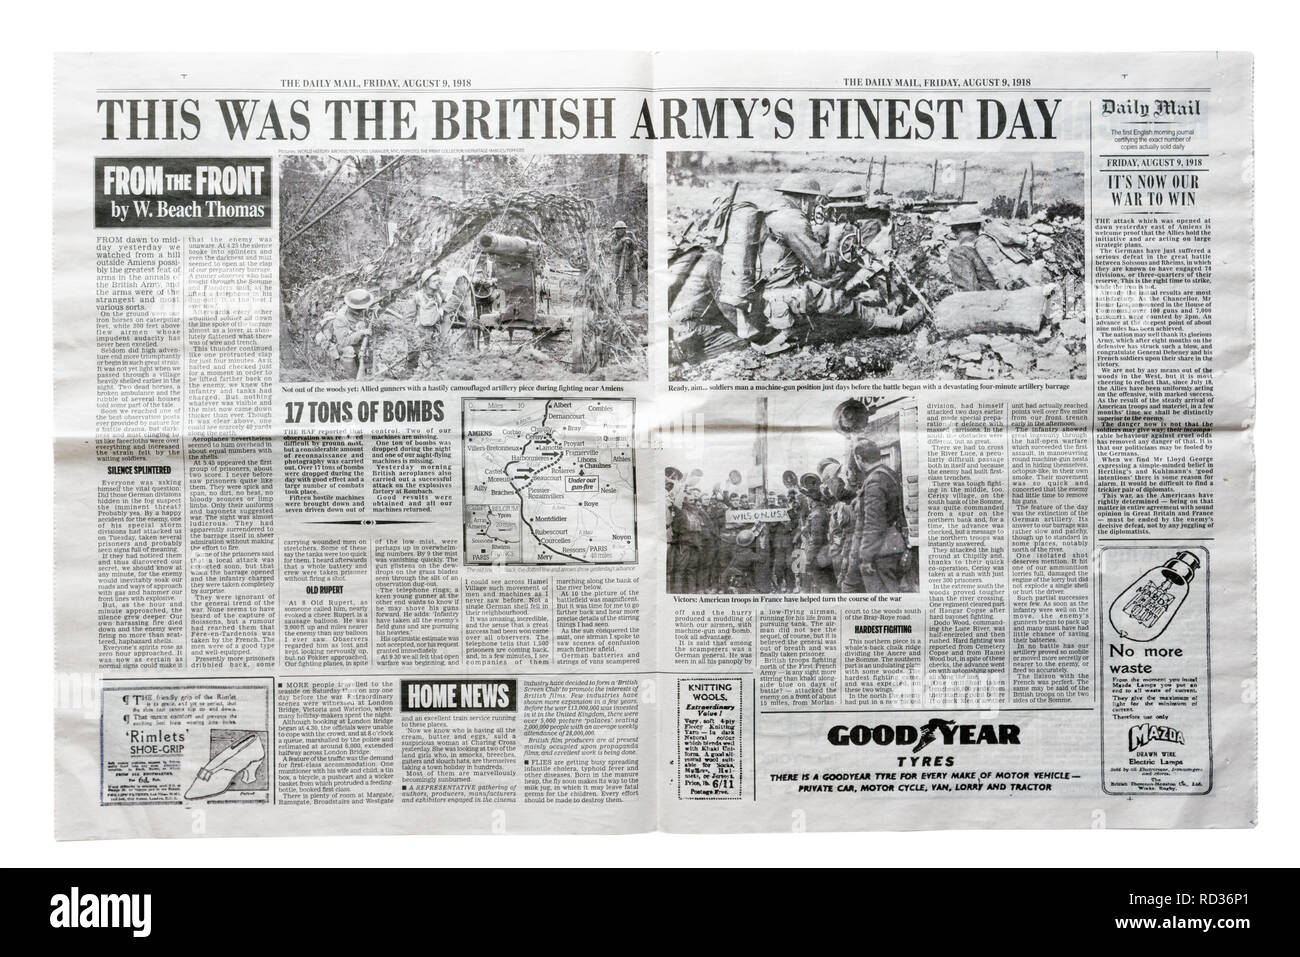 Middle pages of a reproduction Daily Mail from August 9 1918 with the headline This Was the British Army's Finest Day, an article by W Beach Thomas - Stock Image